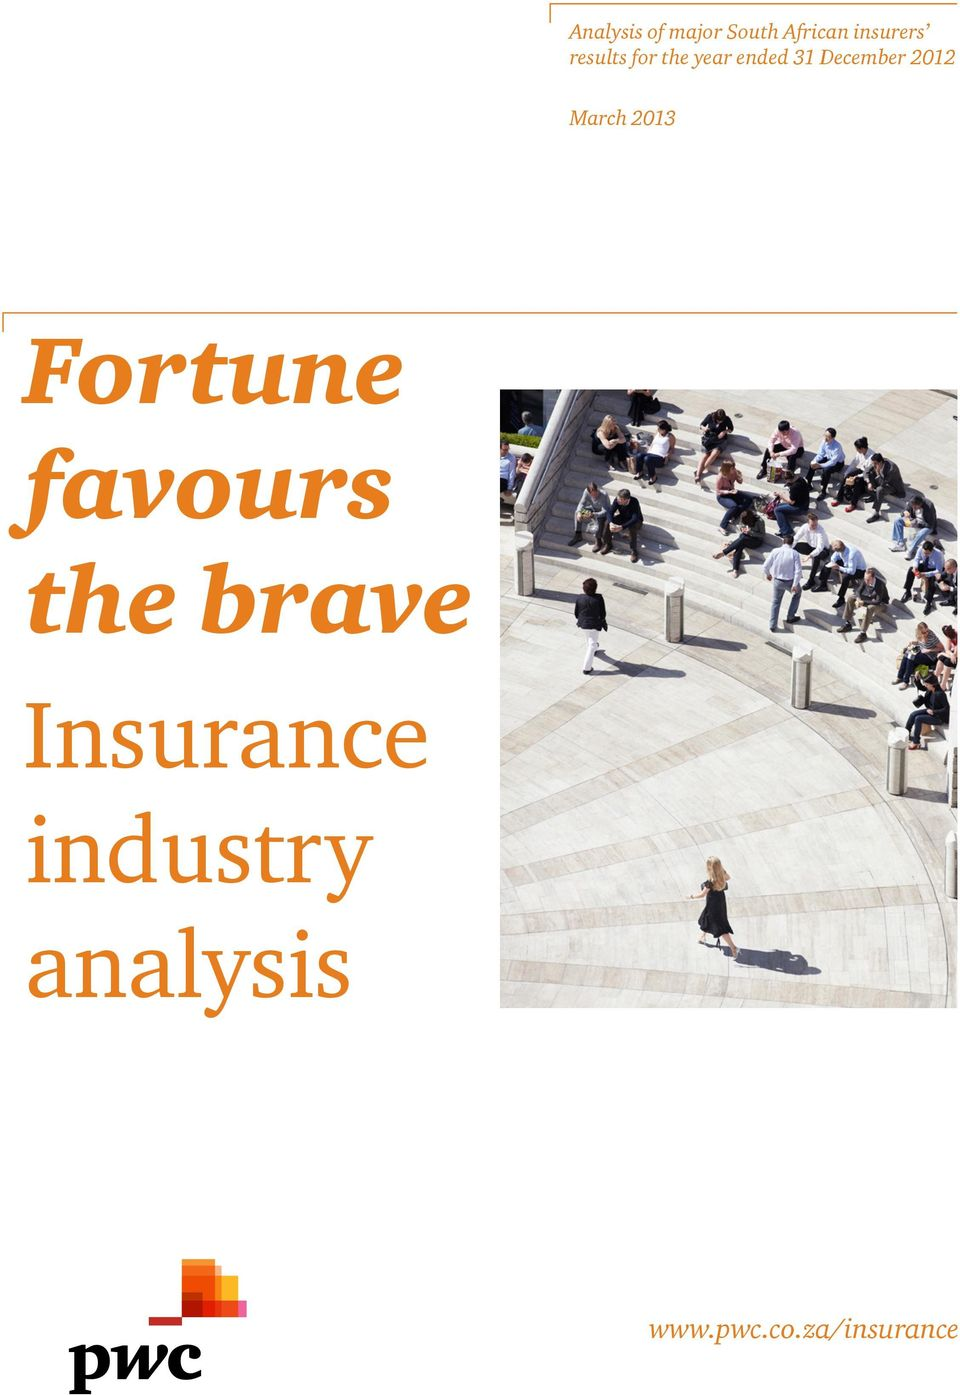 March 2013 Fortune favours the brave